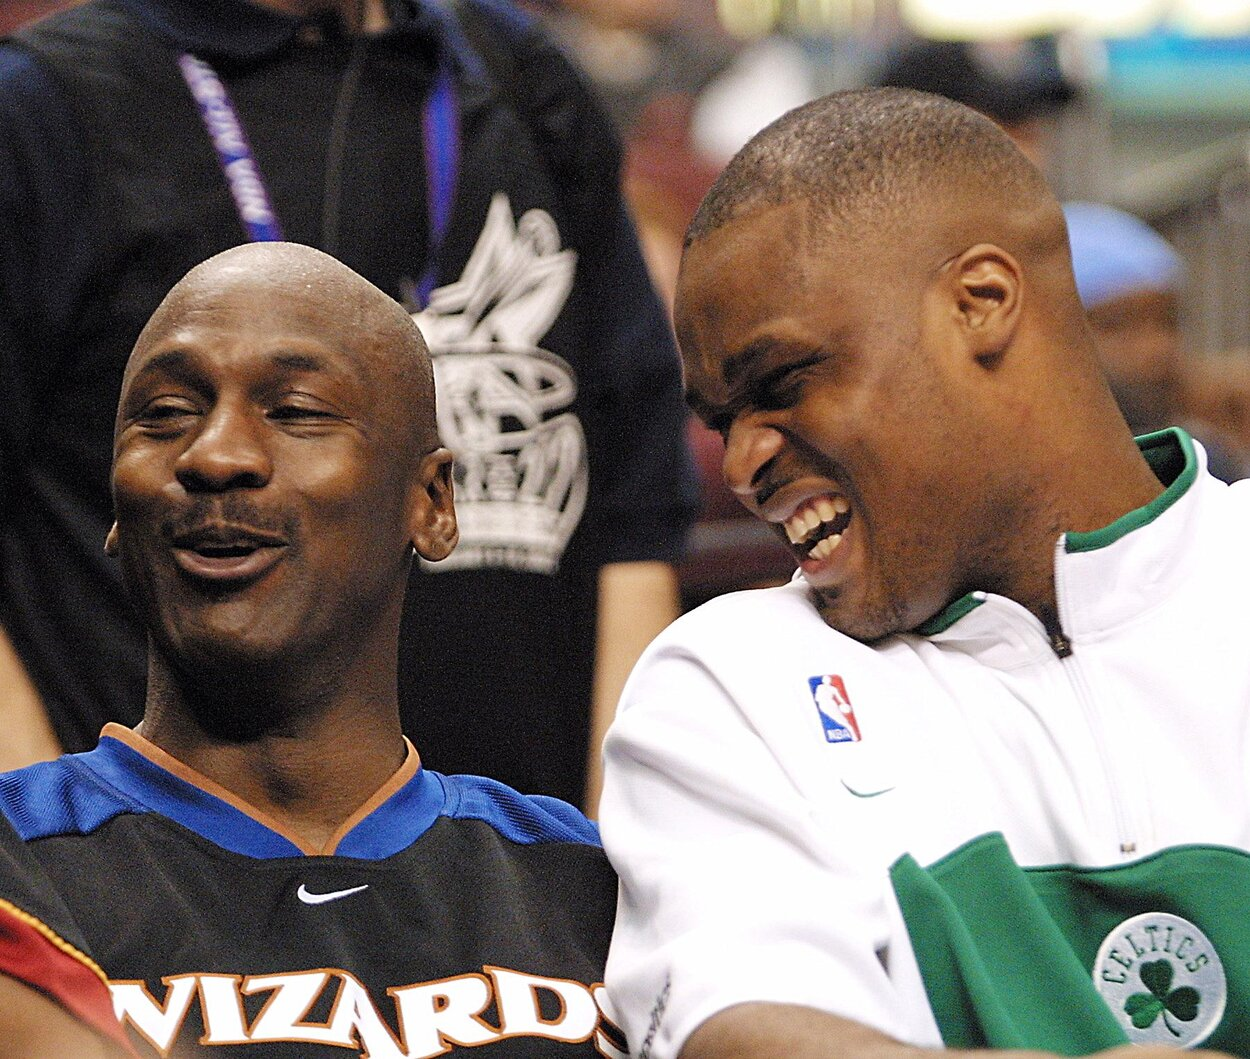 Washington Wizards guard Michael Jordan (L) during the 2002 NBA All-Star Game.